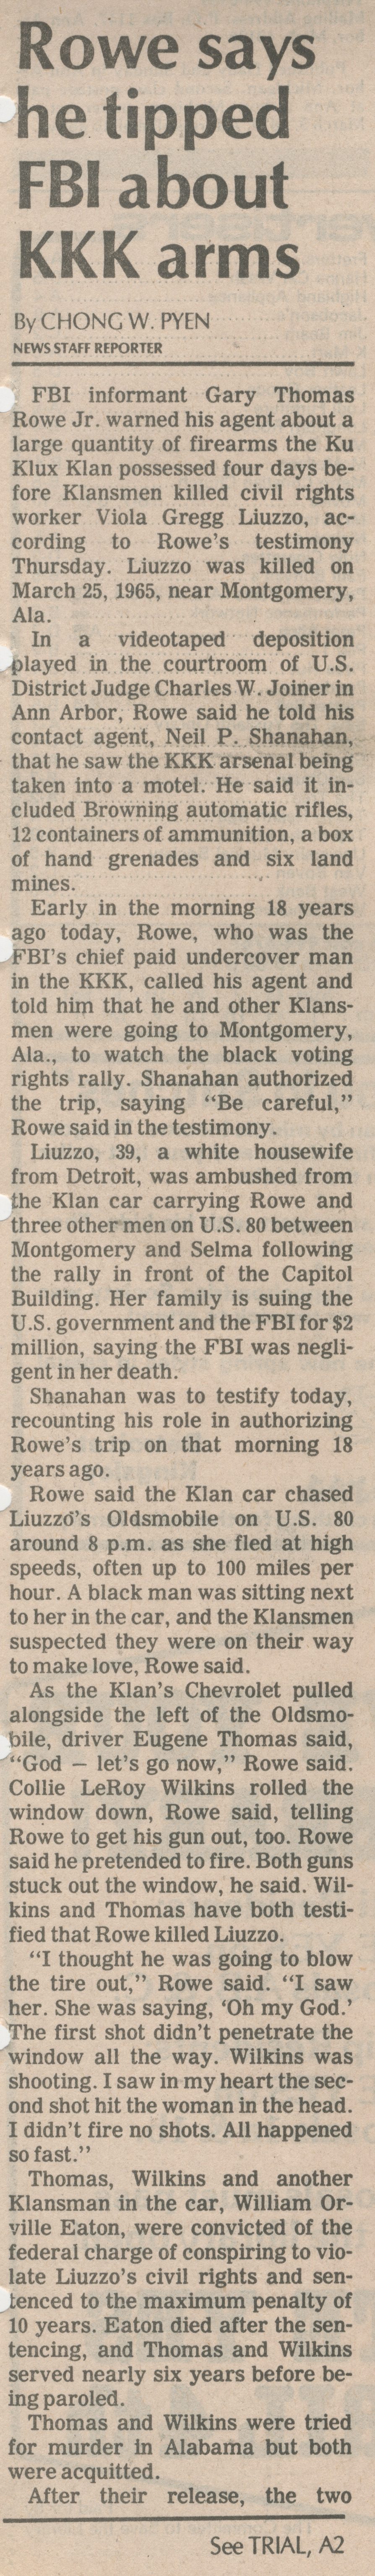 Rowe Says He Tipped FBI About KKK Arms image